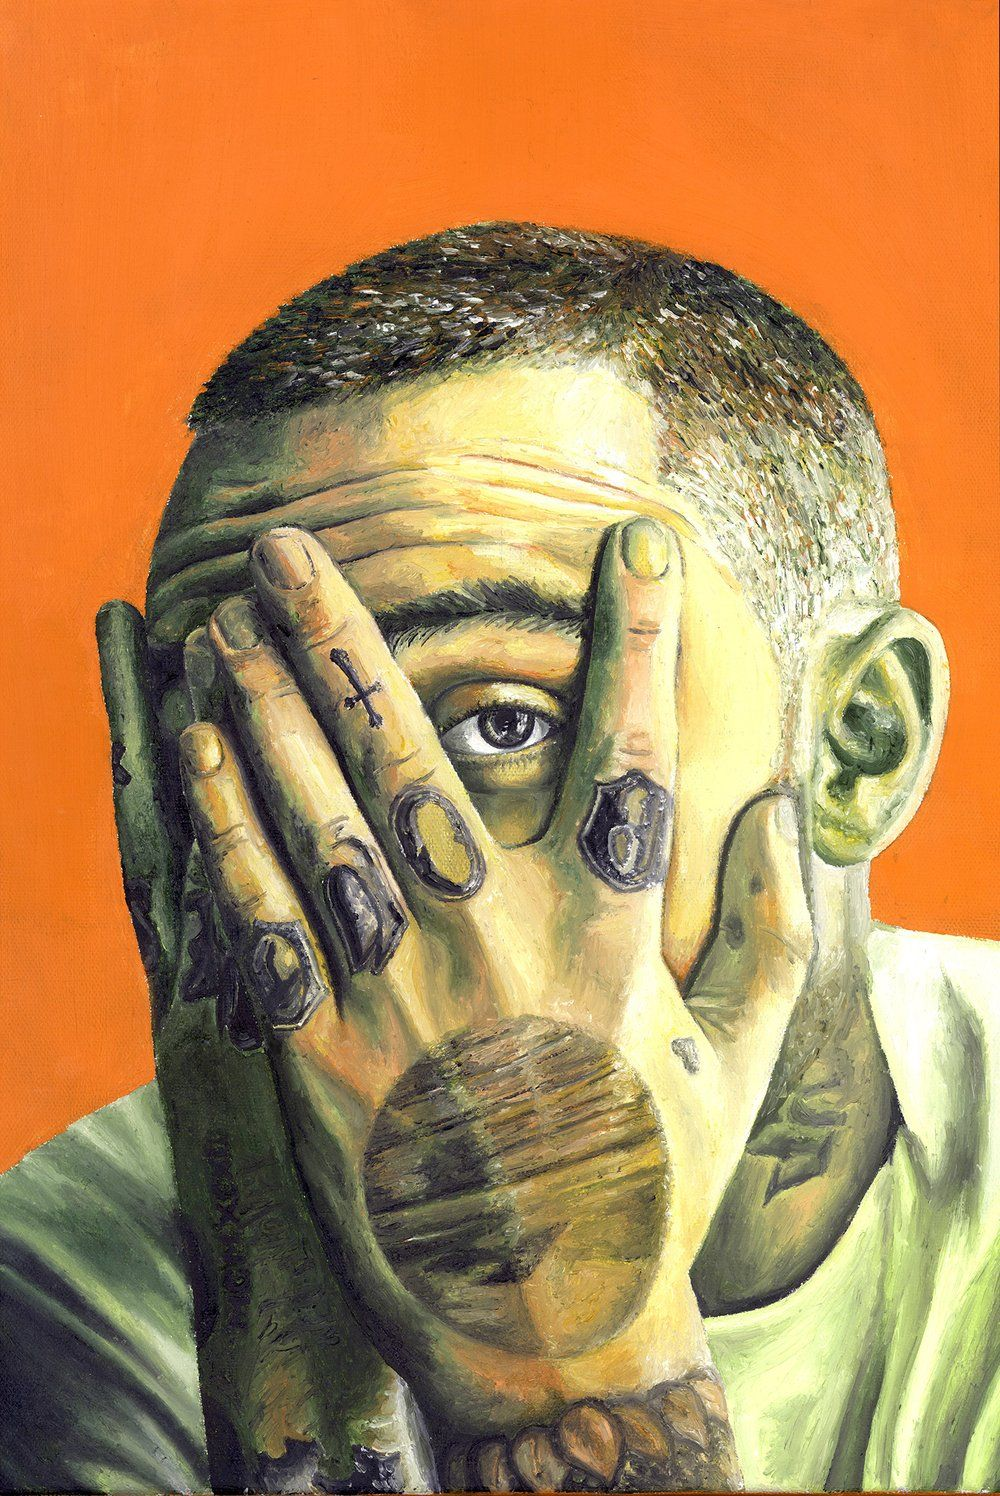 Mac Poster in 2020 Mac miller, Mac miller tattoos